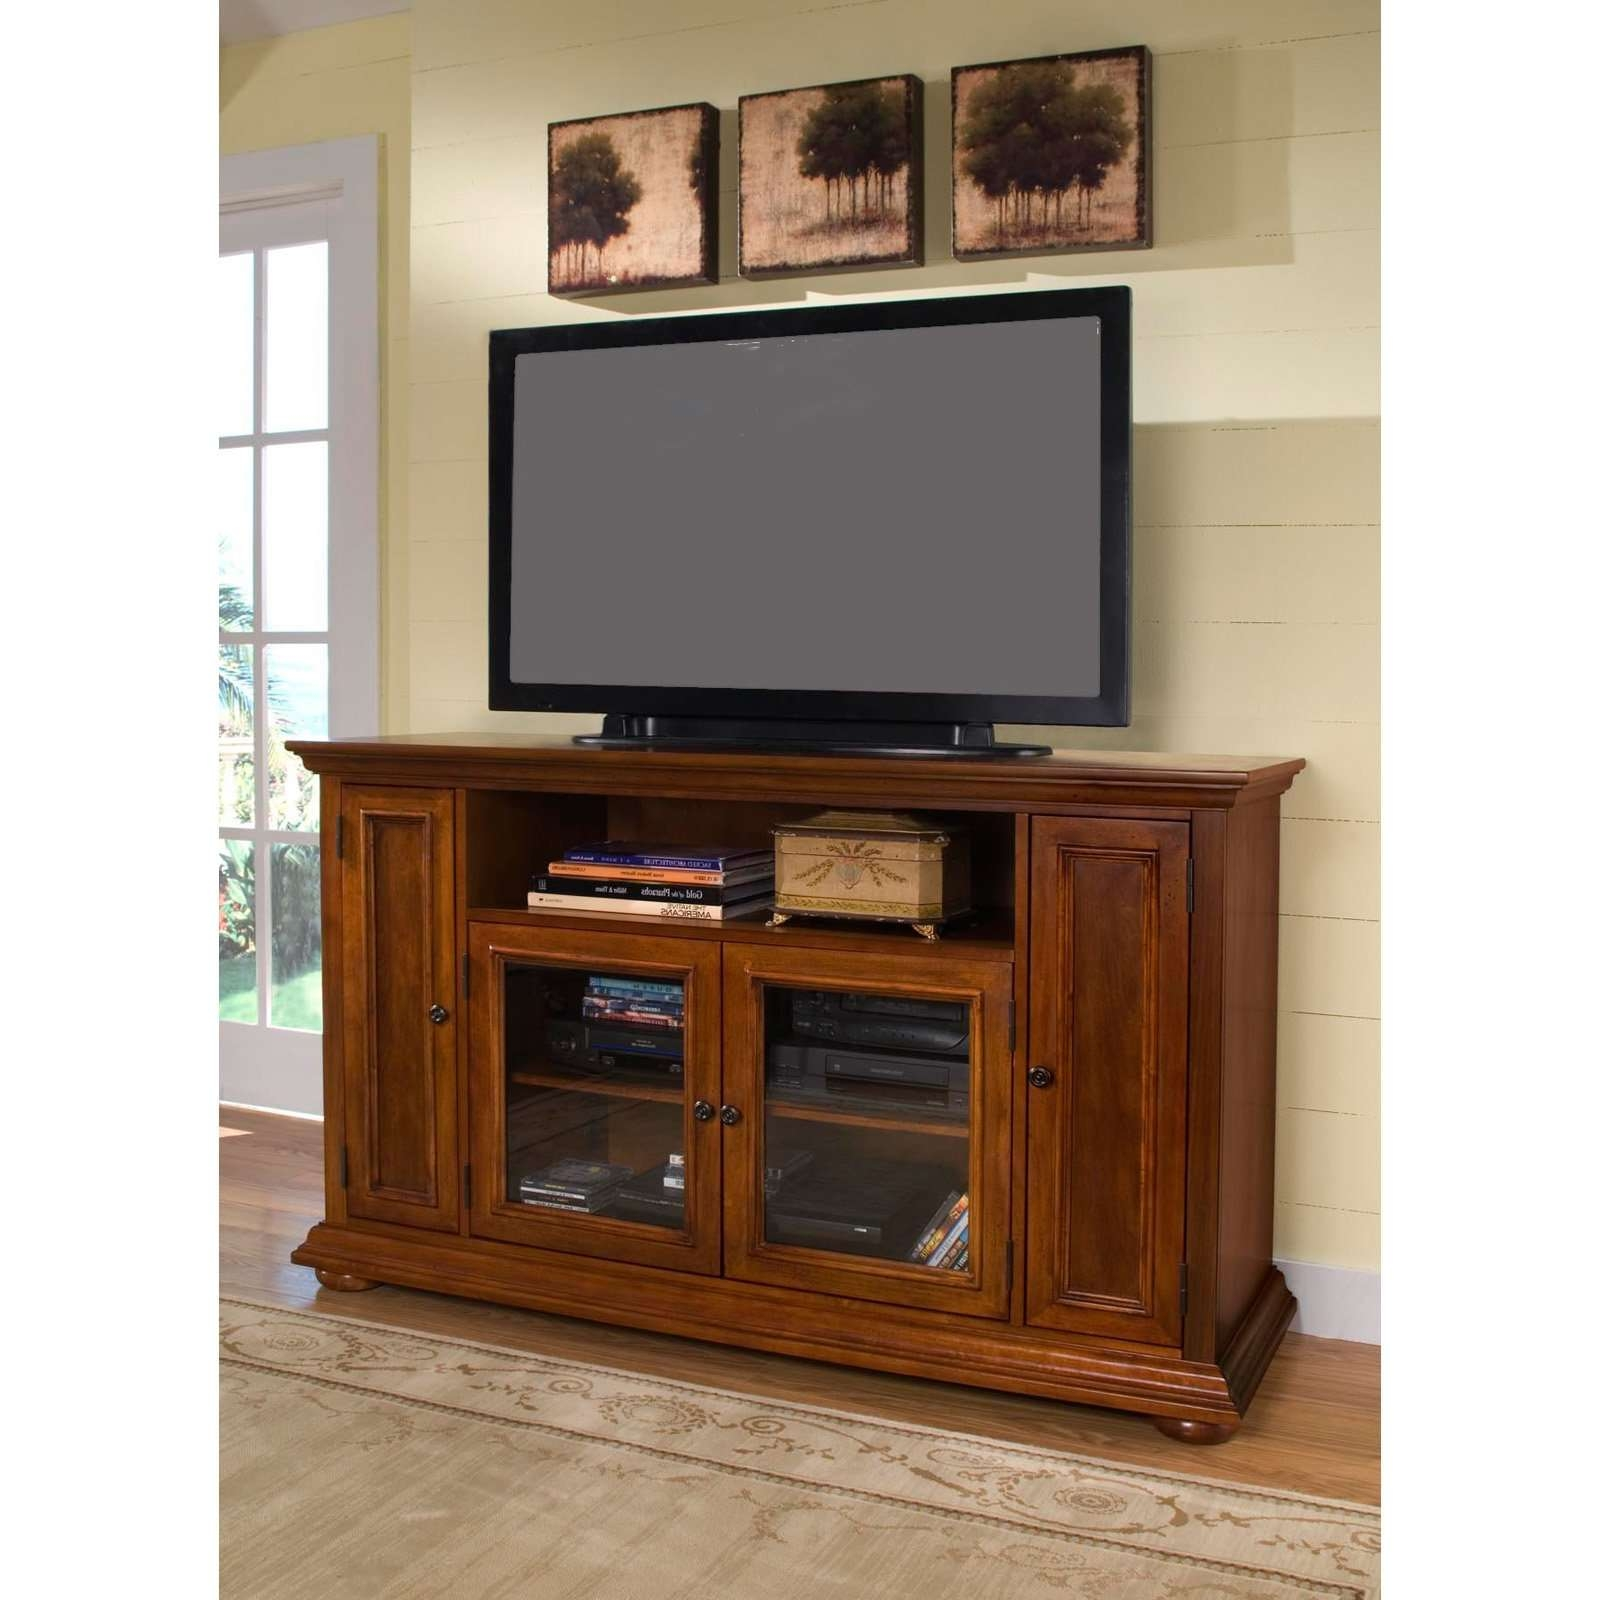 Rectangle Black Flat Screen Tv Over Brown Wooden Cabinet With Within Black Tv Cabinets With Doors (View 13 of 20)